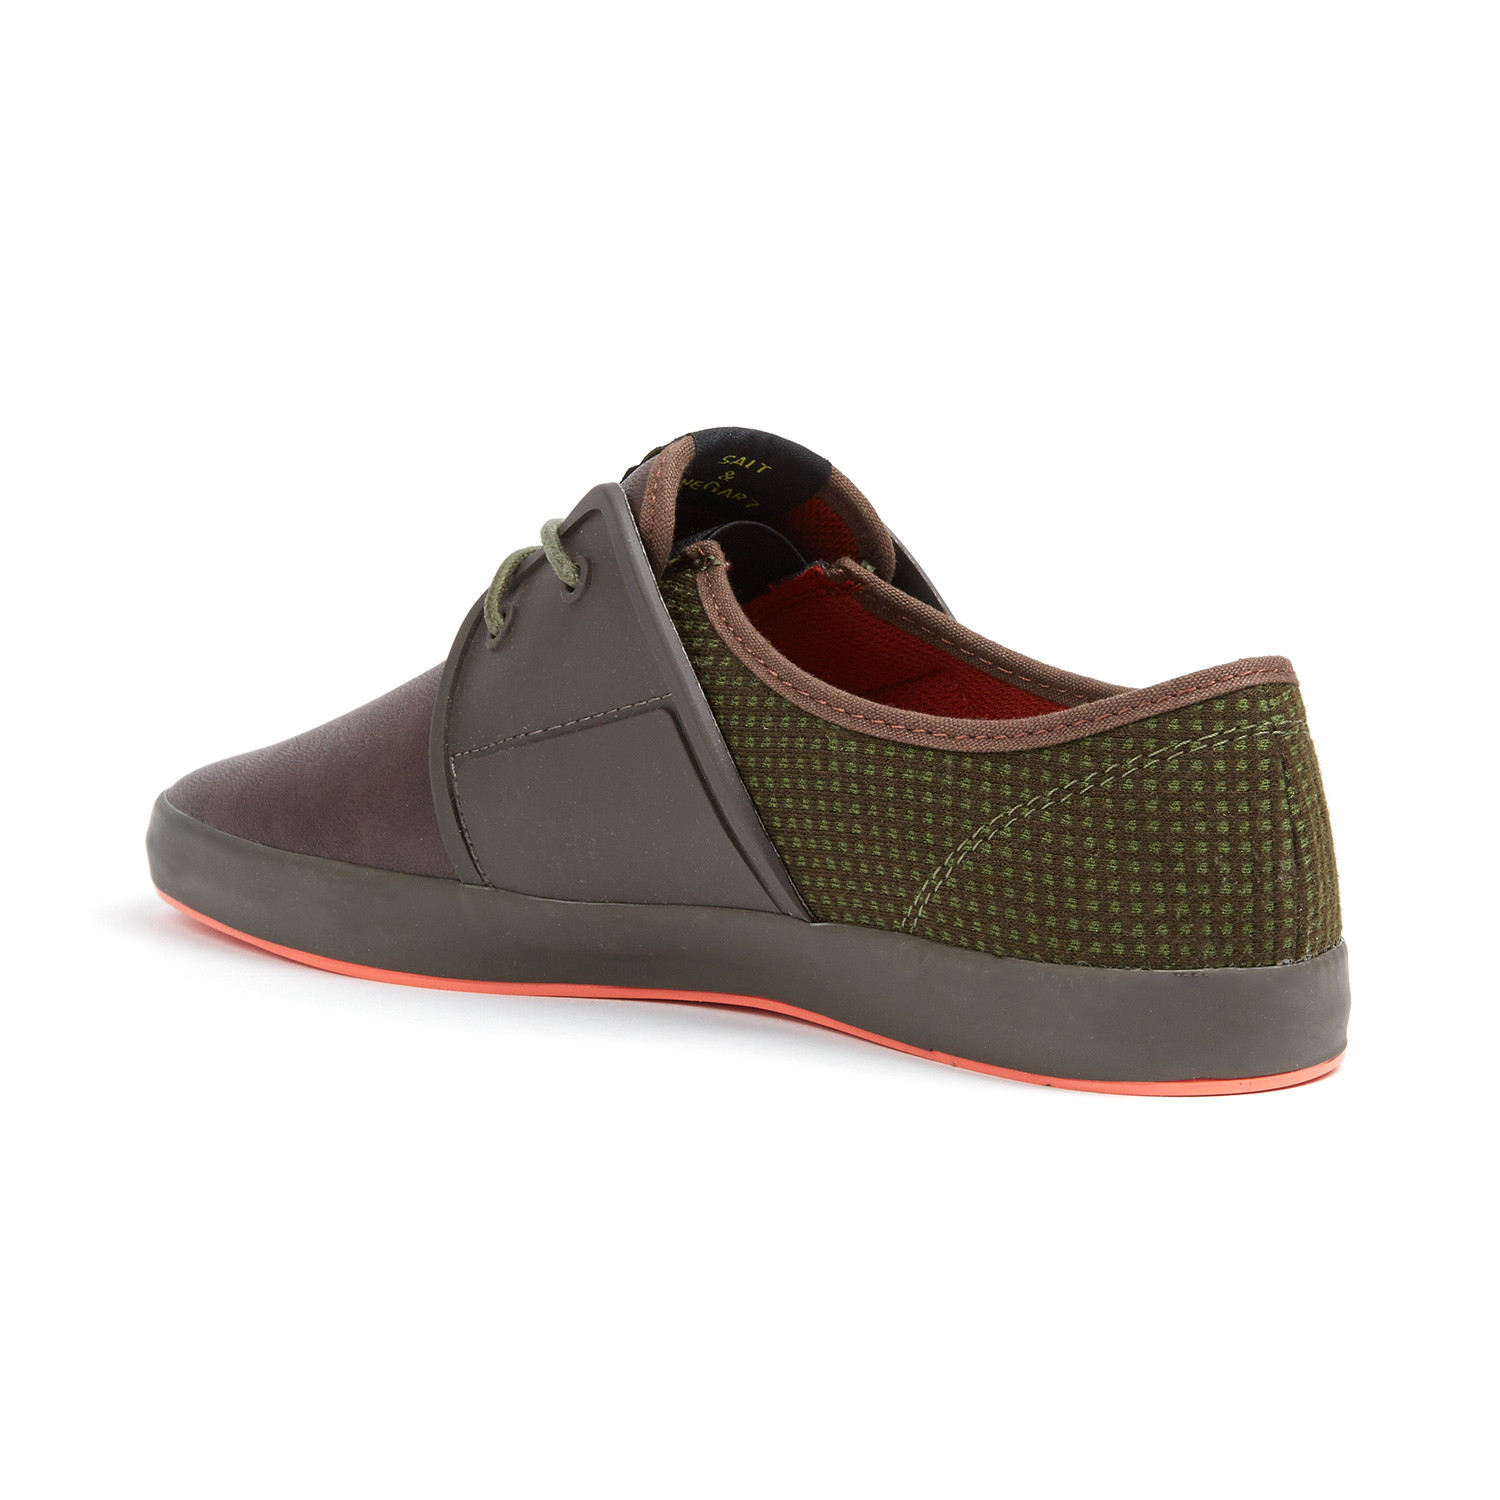 Fish n chips spam 2 sneaker olive brown euro 41 for Shoes with fish in them